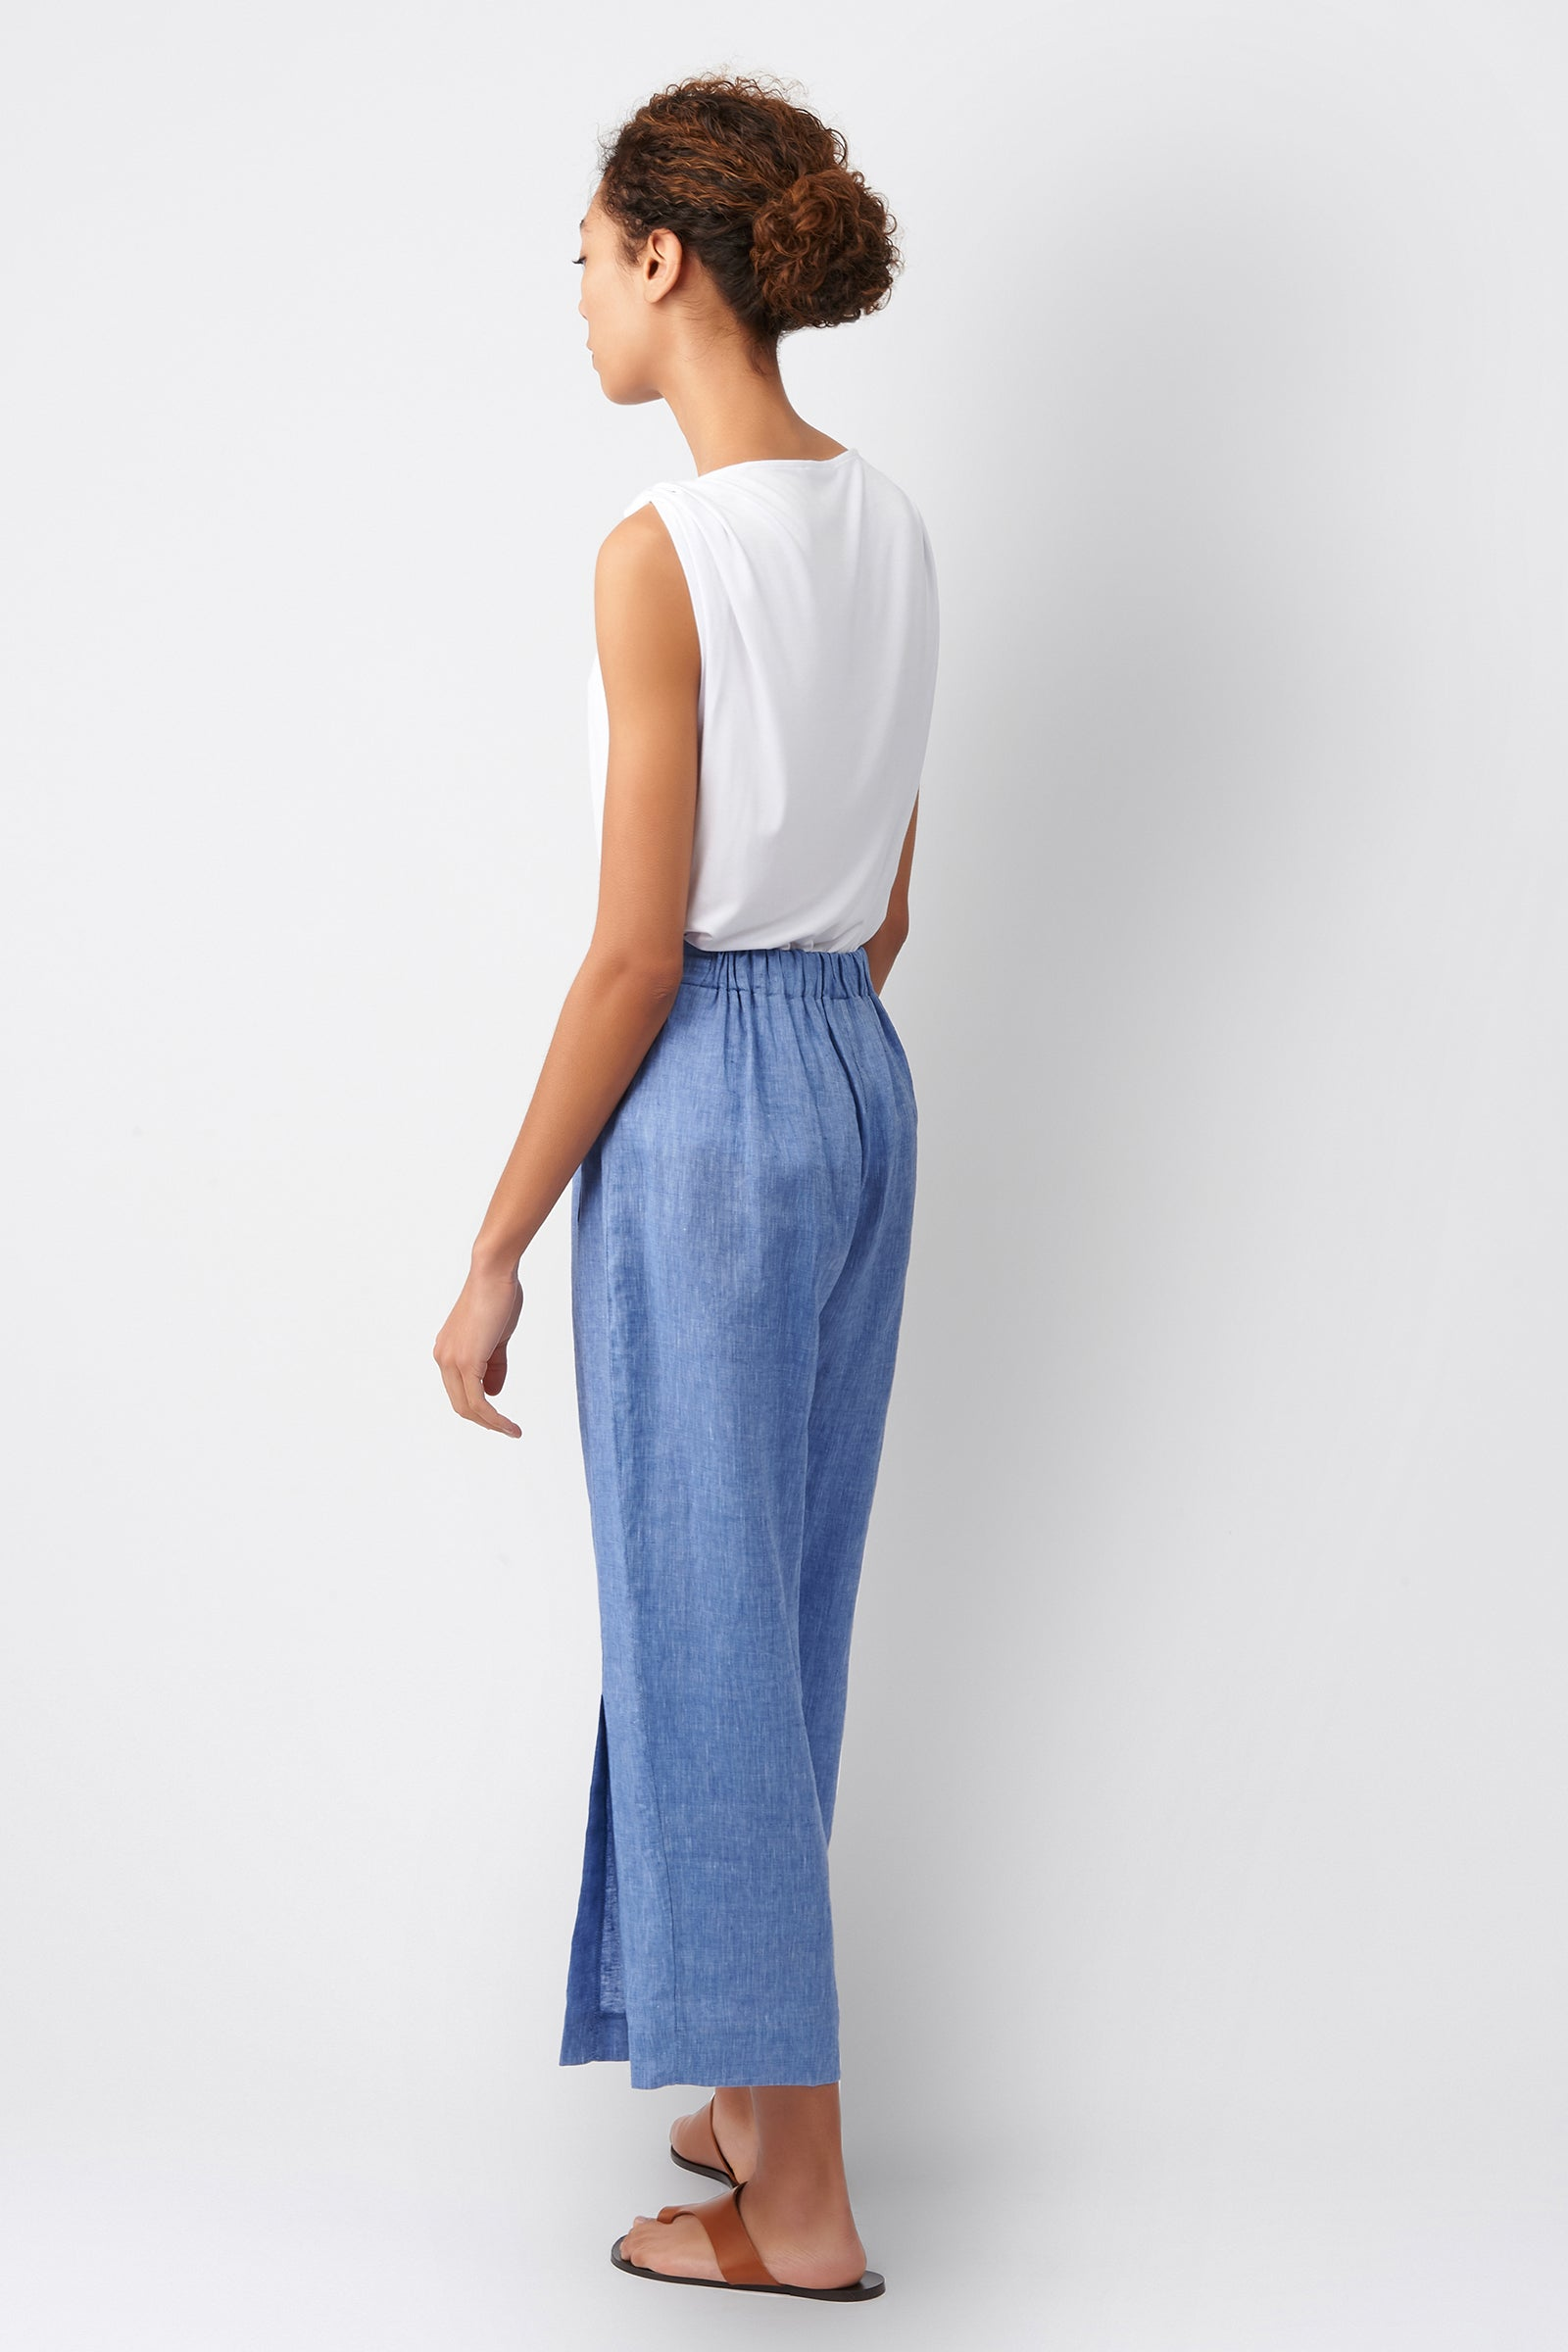 Kal Rieman Linen Side Kick Pant in Blue on Model Full Front View